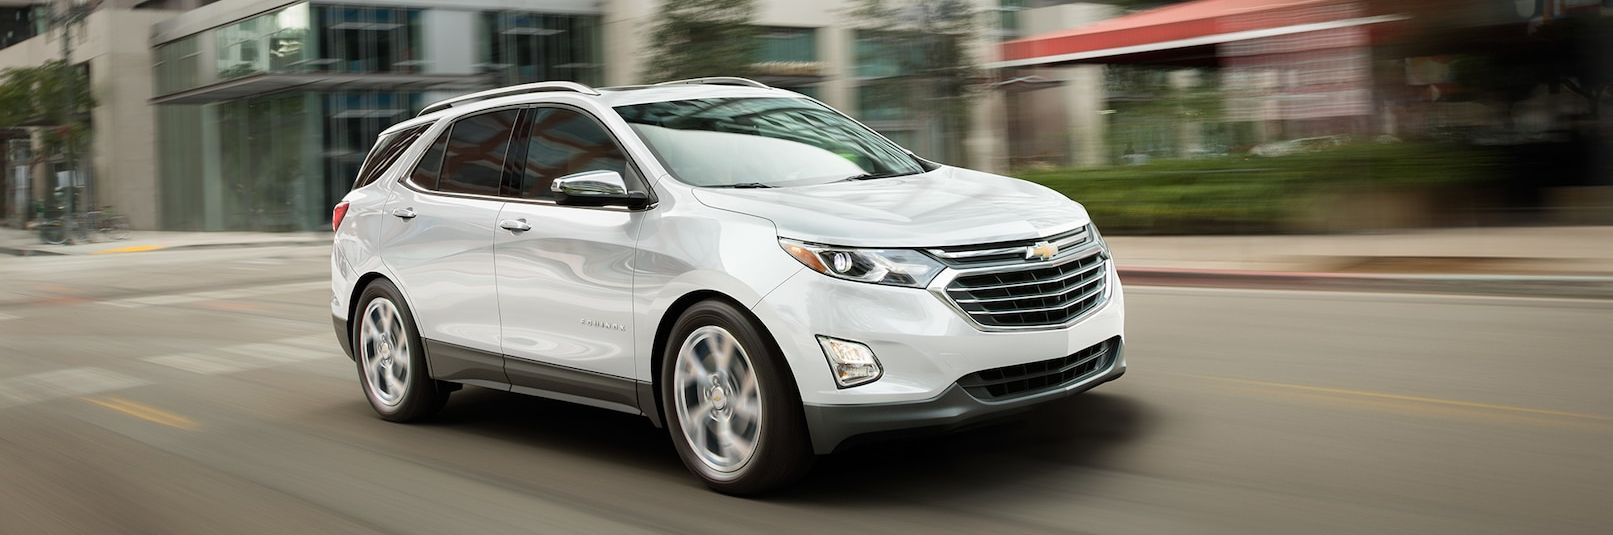 2019 Chevrolet Equinox Financing near Valparaiso, IN